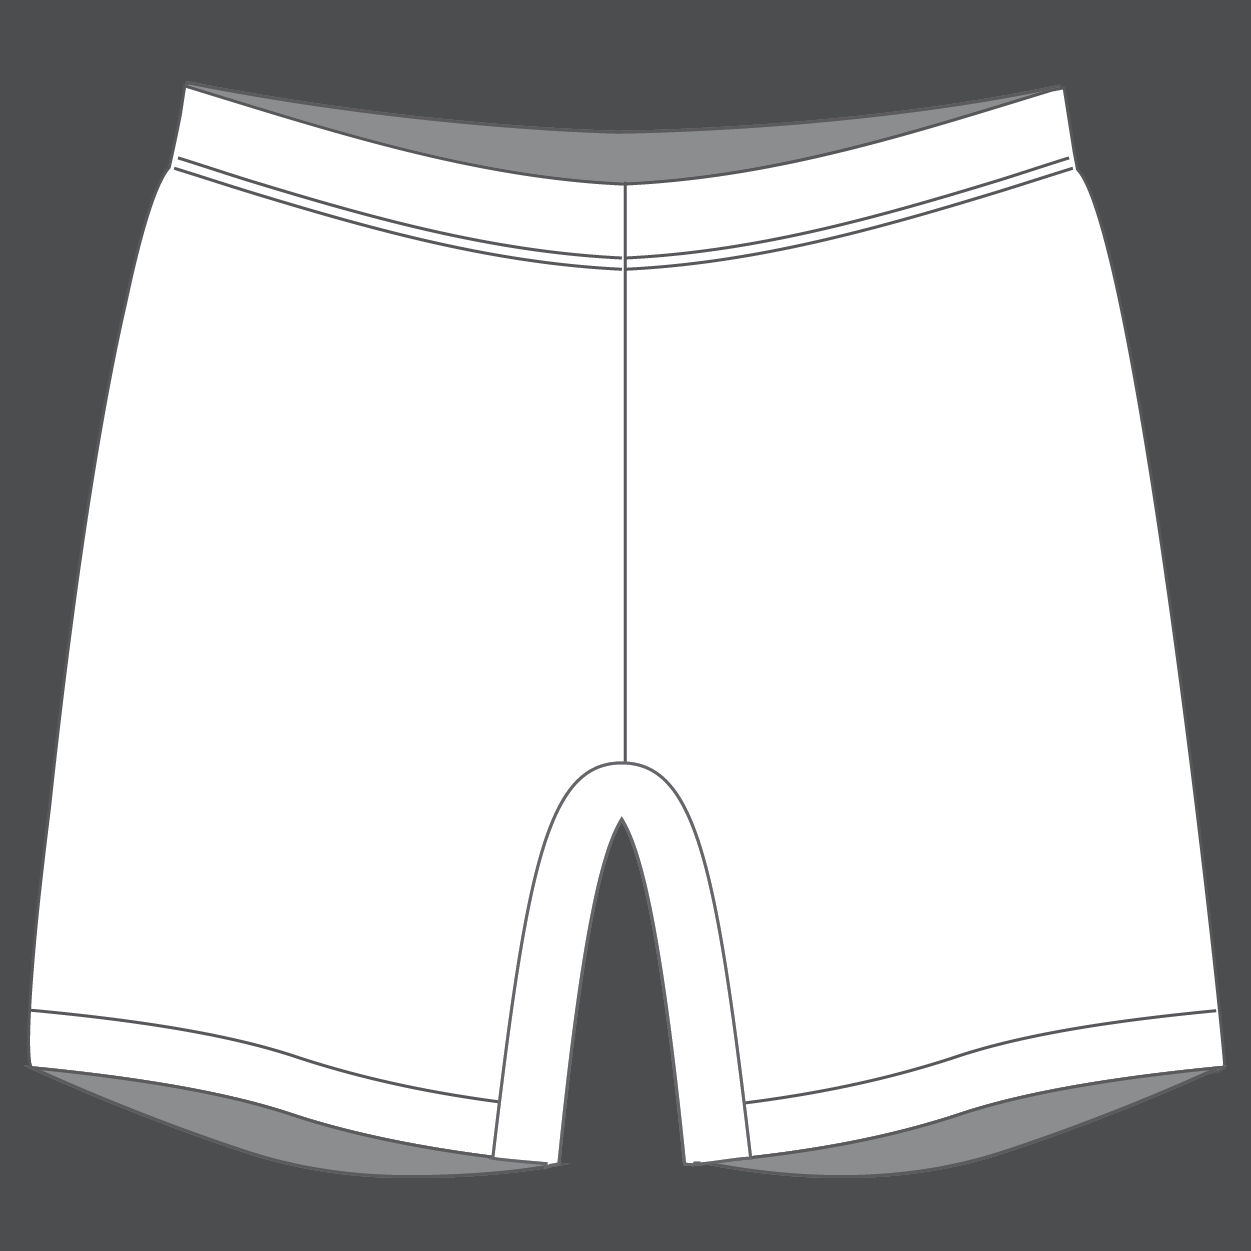 Men's Volleyball Shorts - Retail Price:$44.99Team Price 12-23:$31.99Team Price 24+:$29.99Fabric:Interlock fabric front and back with 4-way stretch mesh sides and crotchSizes:YS, YM, YL, XS, S, M, L, XL, XXL, XXXLOptions:N/A